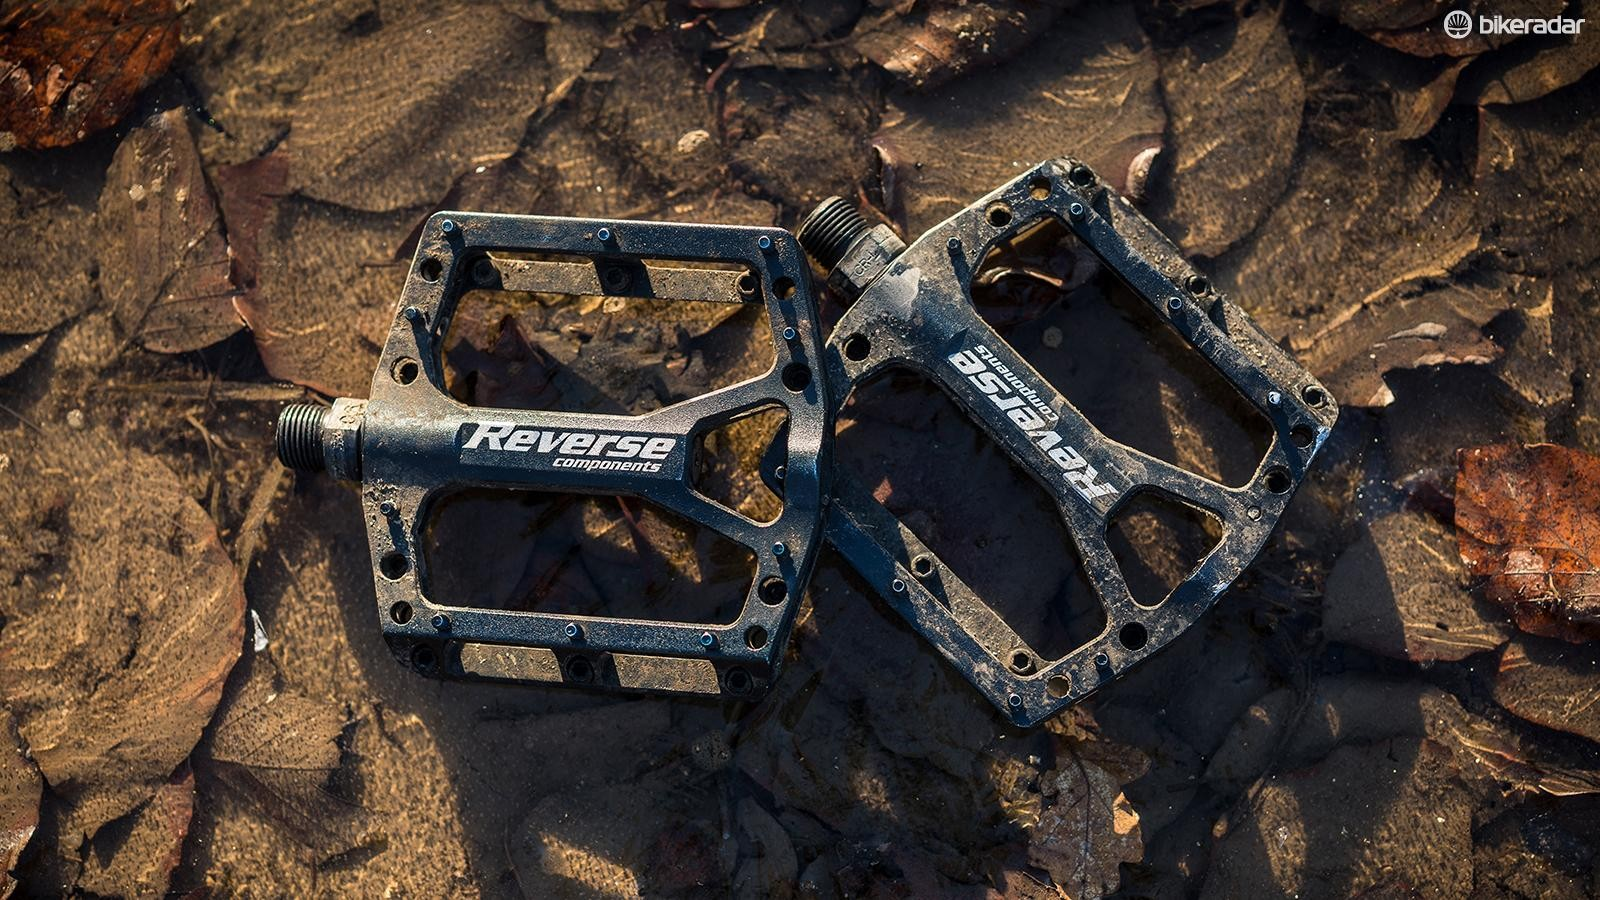 Reverse Components' Black ONE pedals